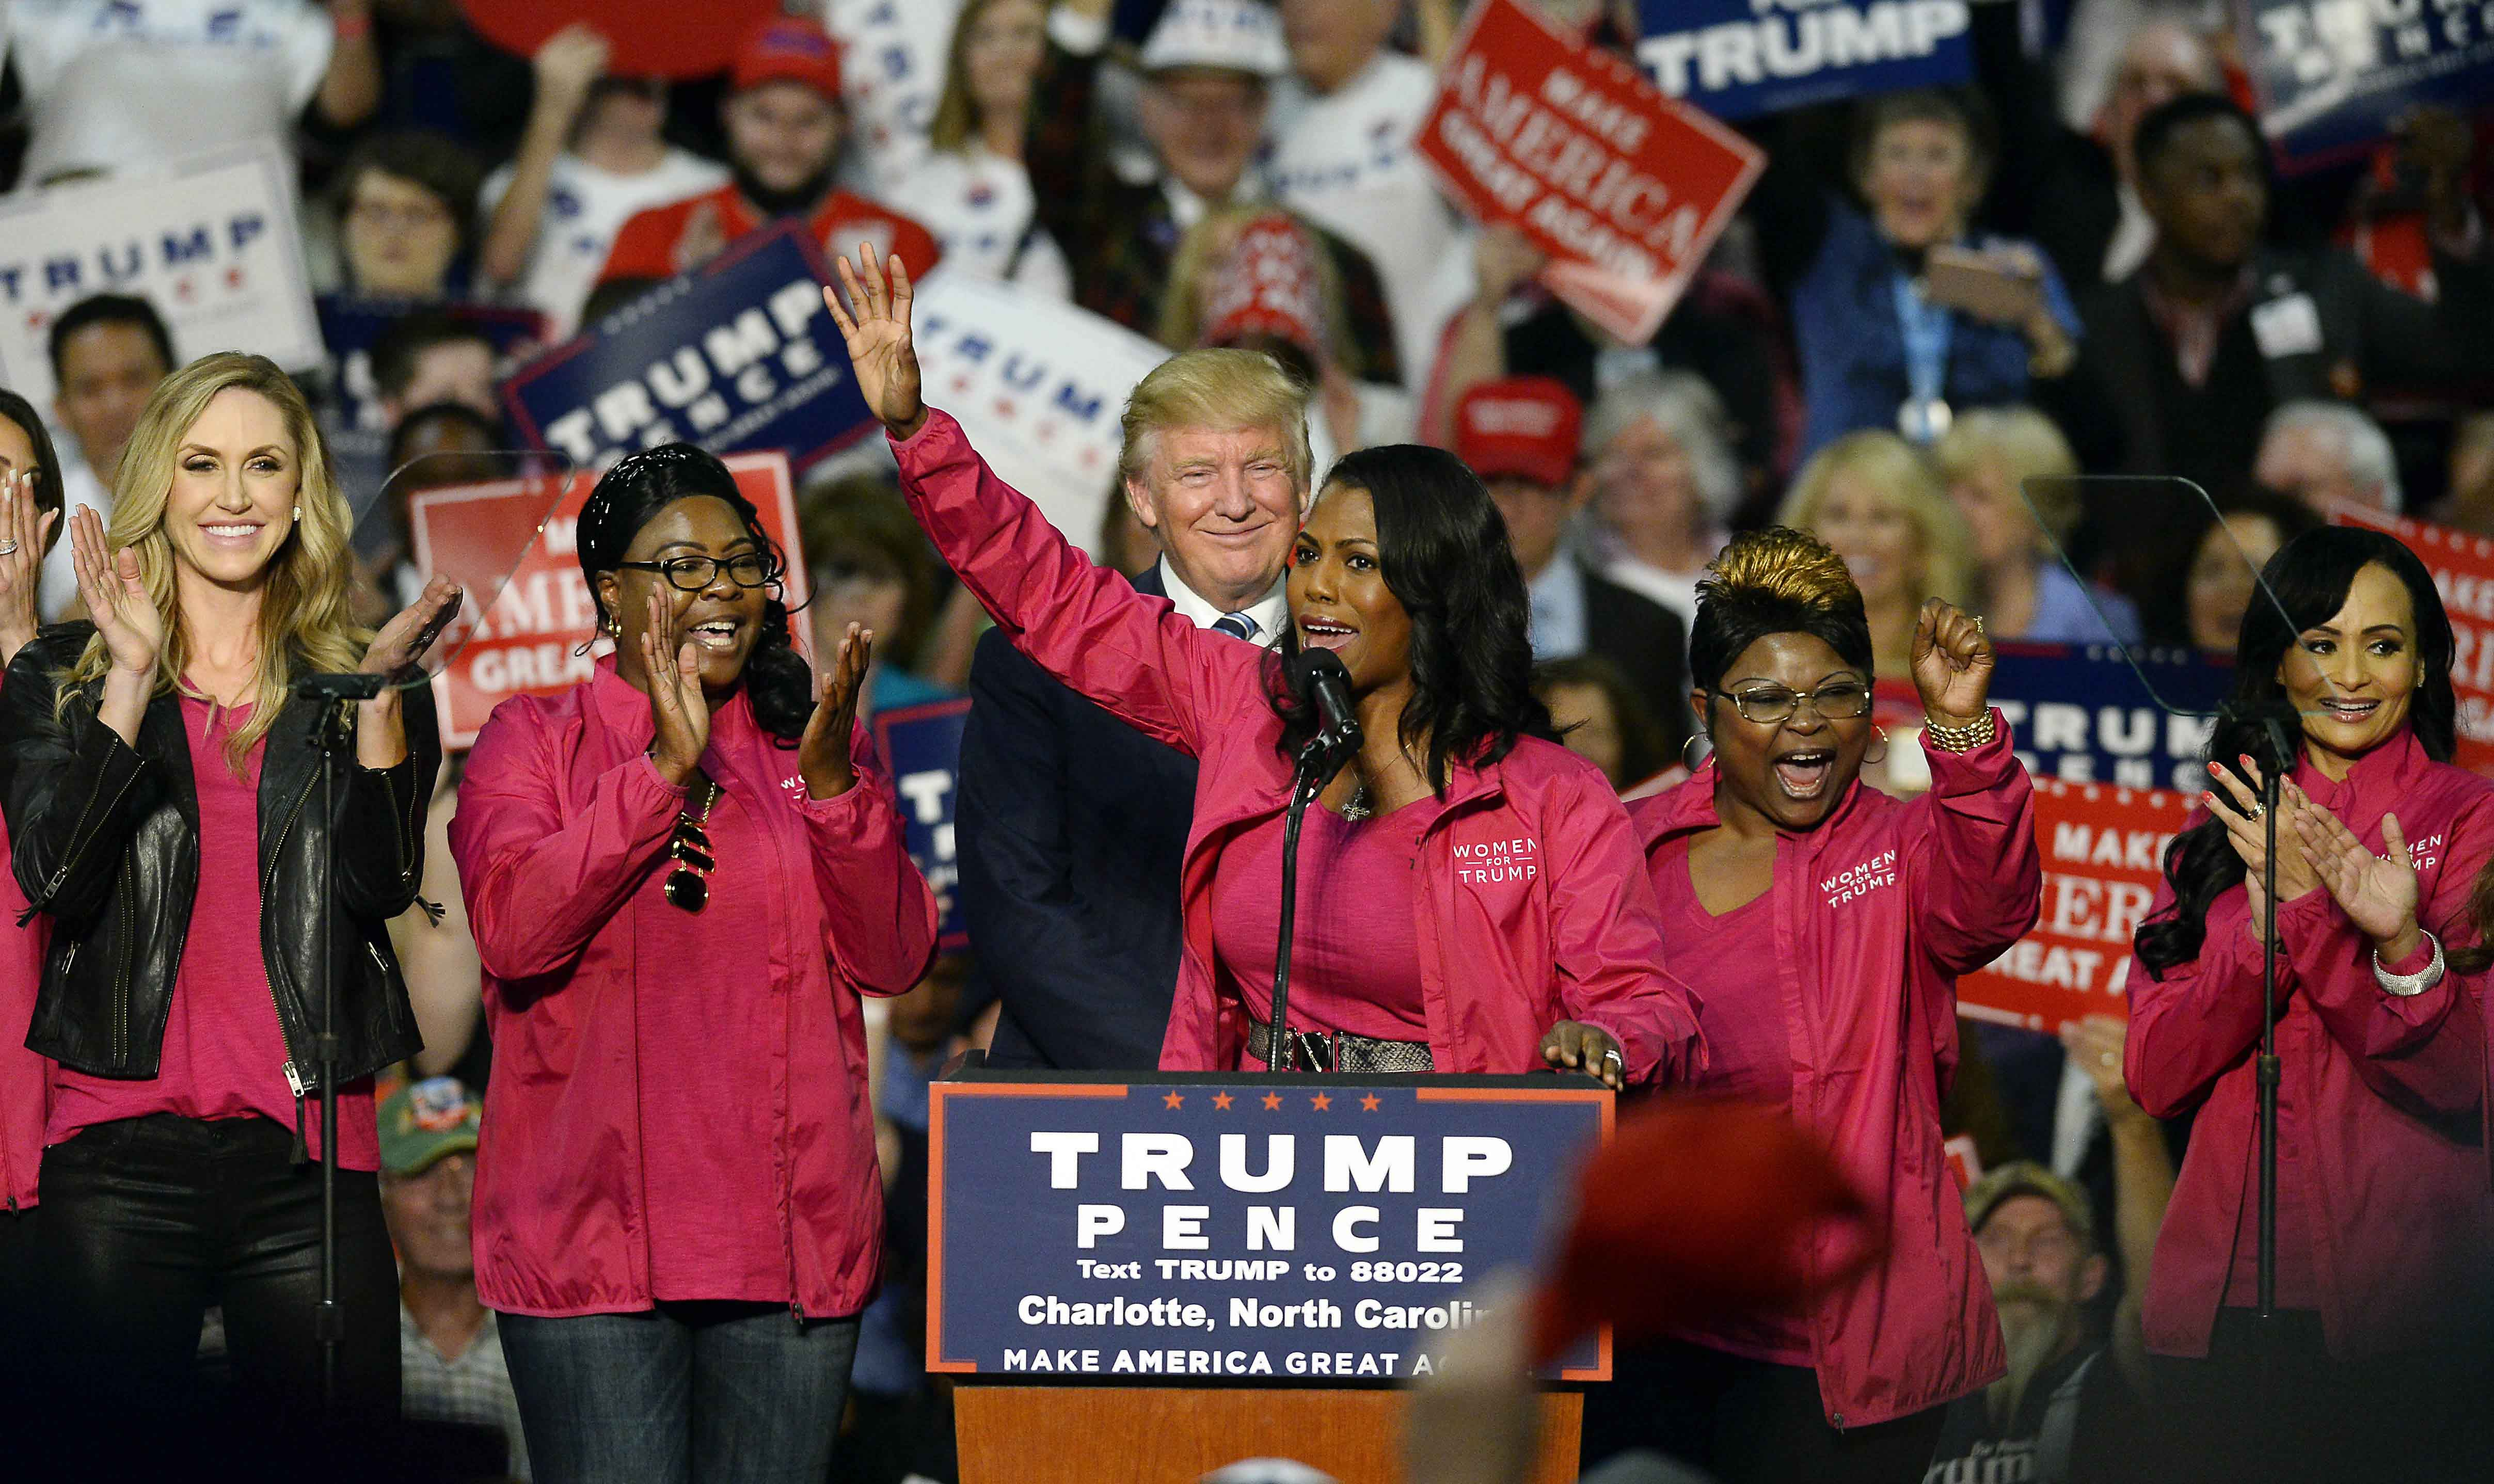 Reality TV personality Omarosa Manigault and other Women for Trump members endorse Republican presidential candidate Donald Trump during a campaign rally at the Charlotte Convention Center in Charlotte, N.C., on Friday, Oct. 14, 2016. (David T. Foster III/Charlotte Observer/TNS)